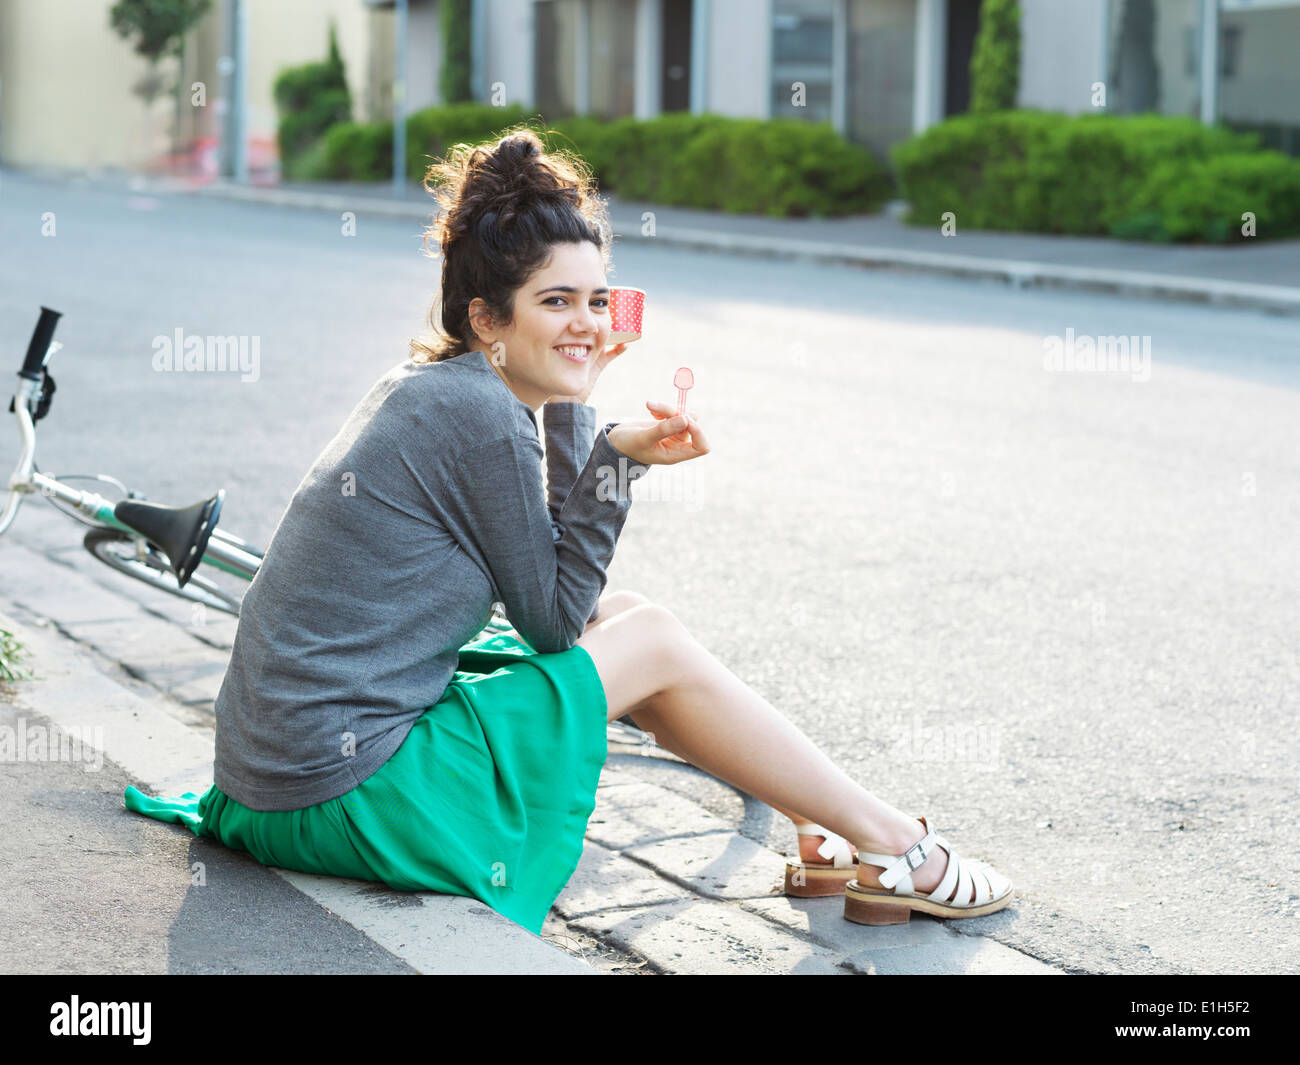 Portrait of young woman eating ice cream on sidewalk - Stock Image